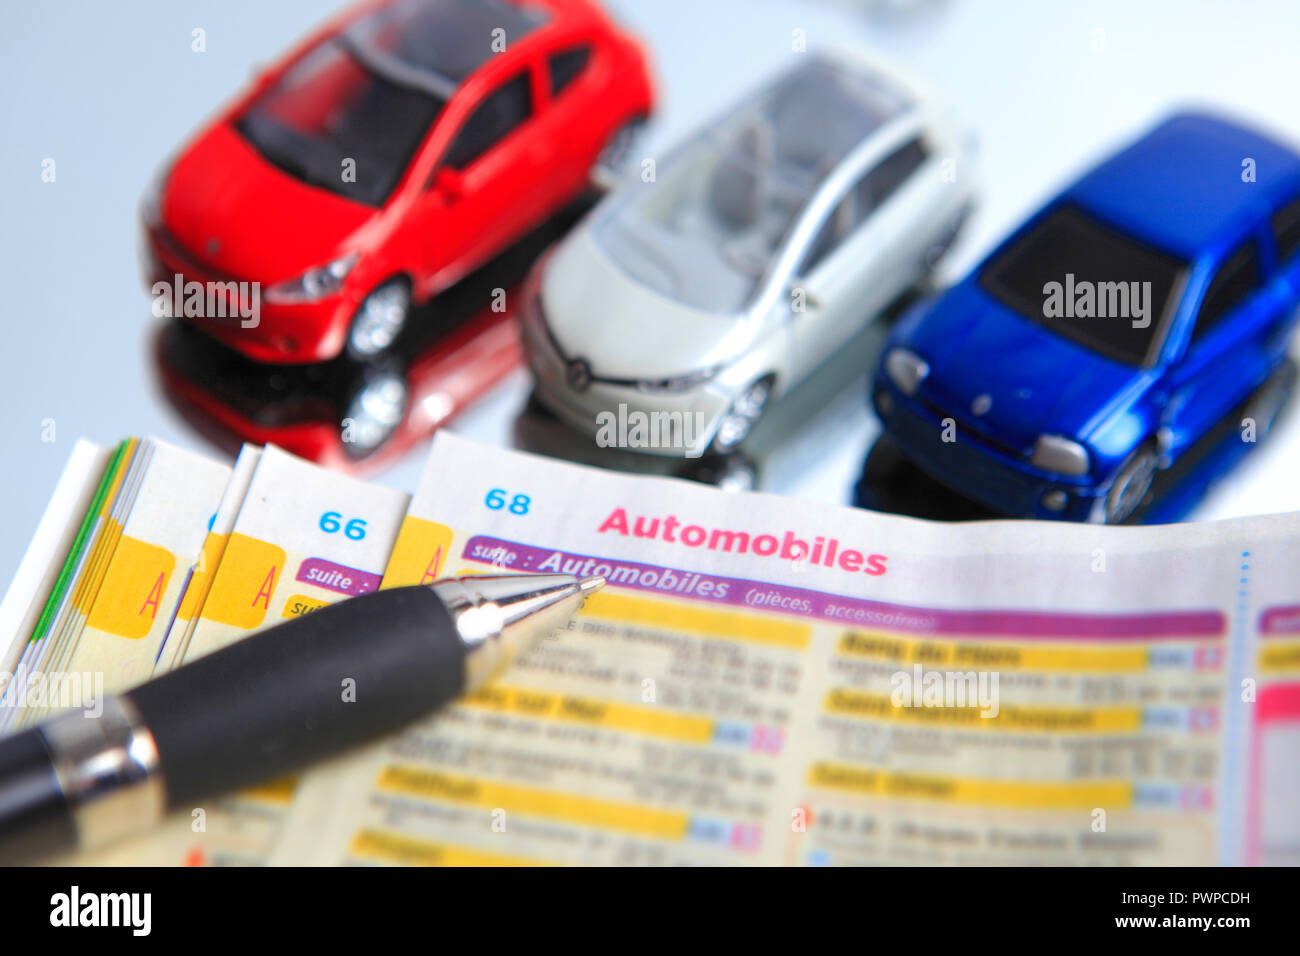 France, still life on car topic. - Stock Image